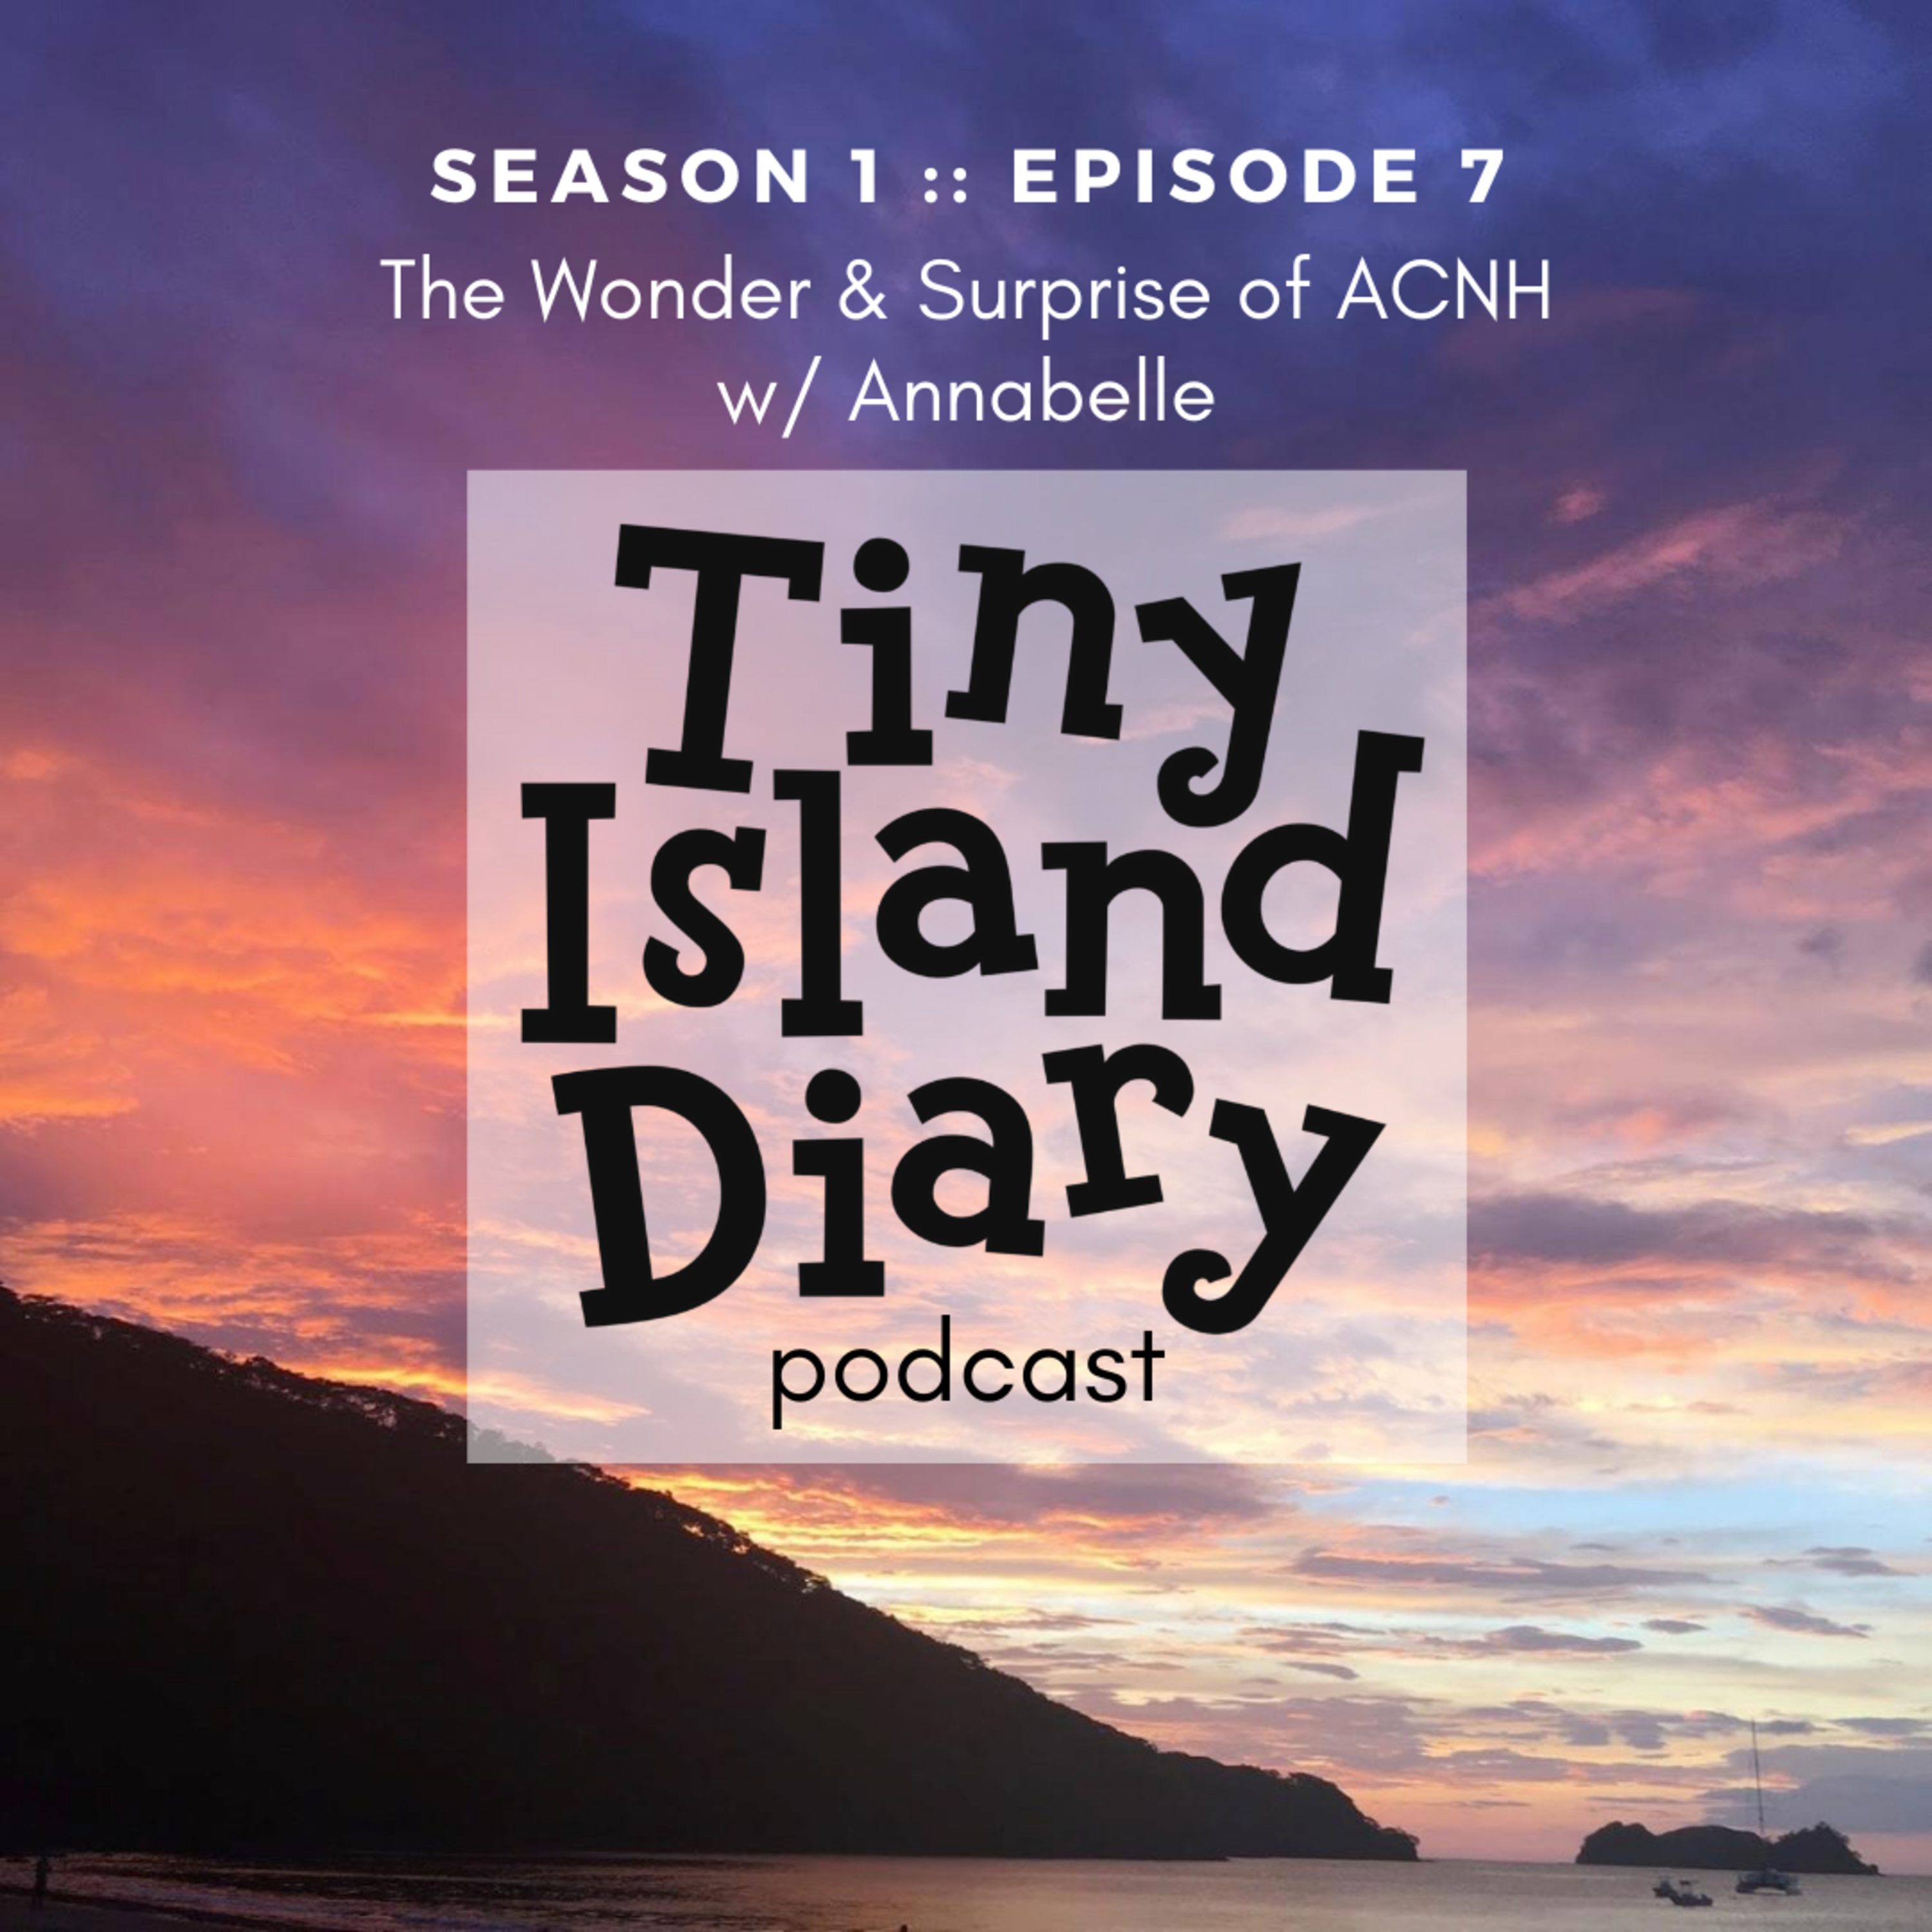 S1E7: The Wonder And Surprise Of #ACNH w/ Annabelle